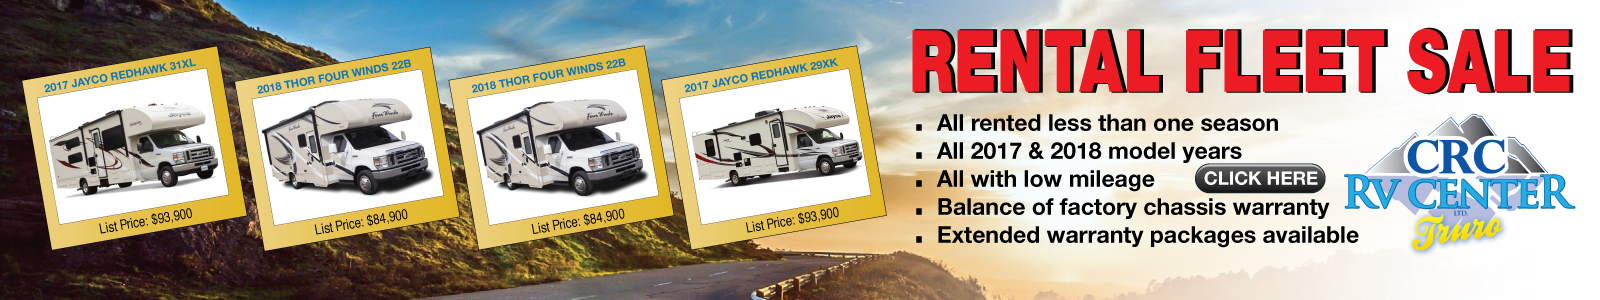 Rental RV Clearout